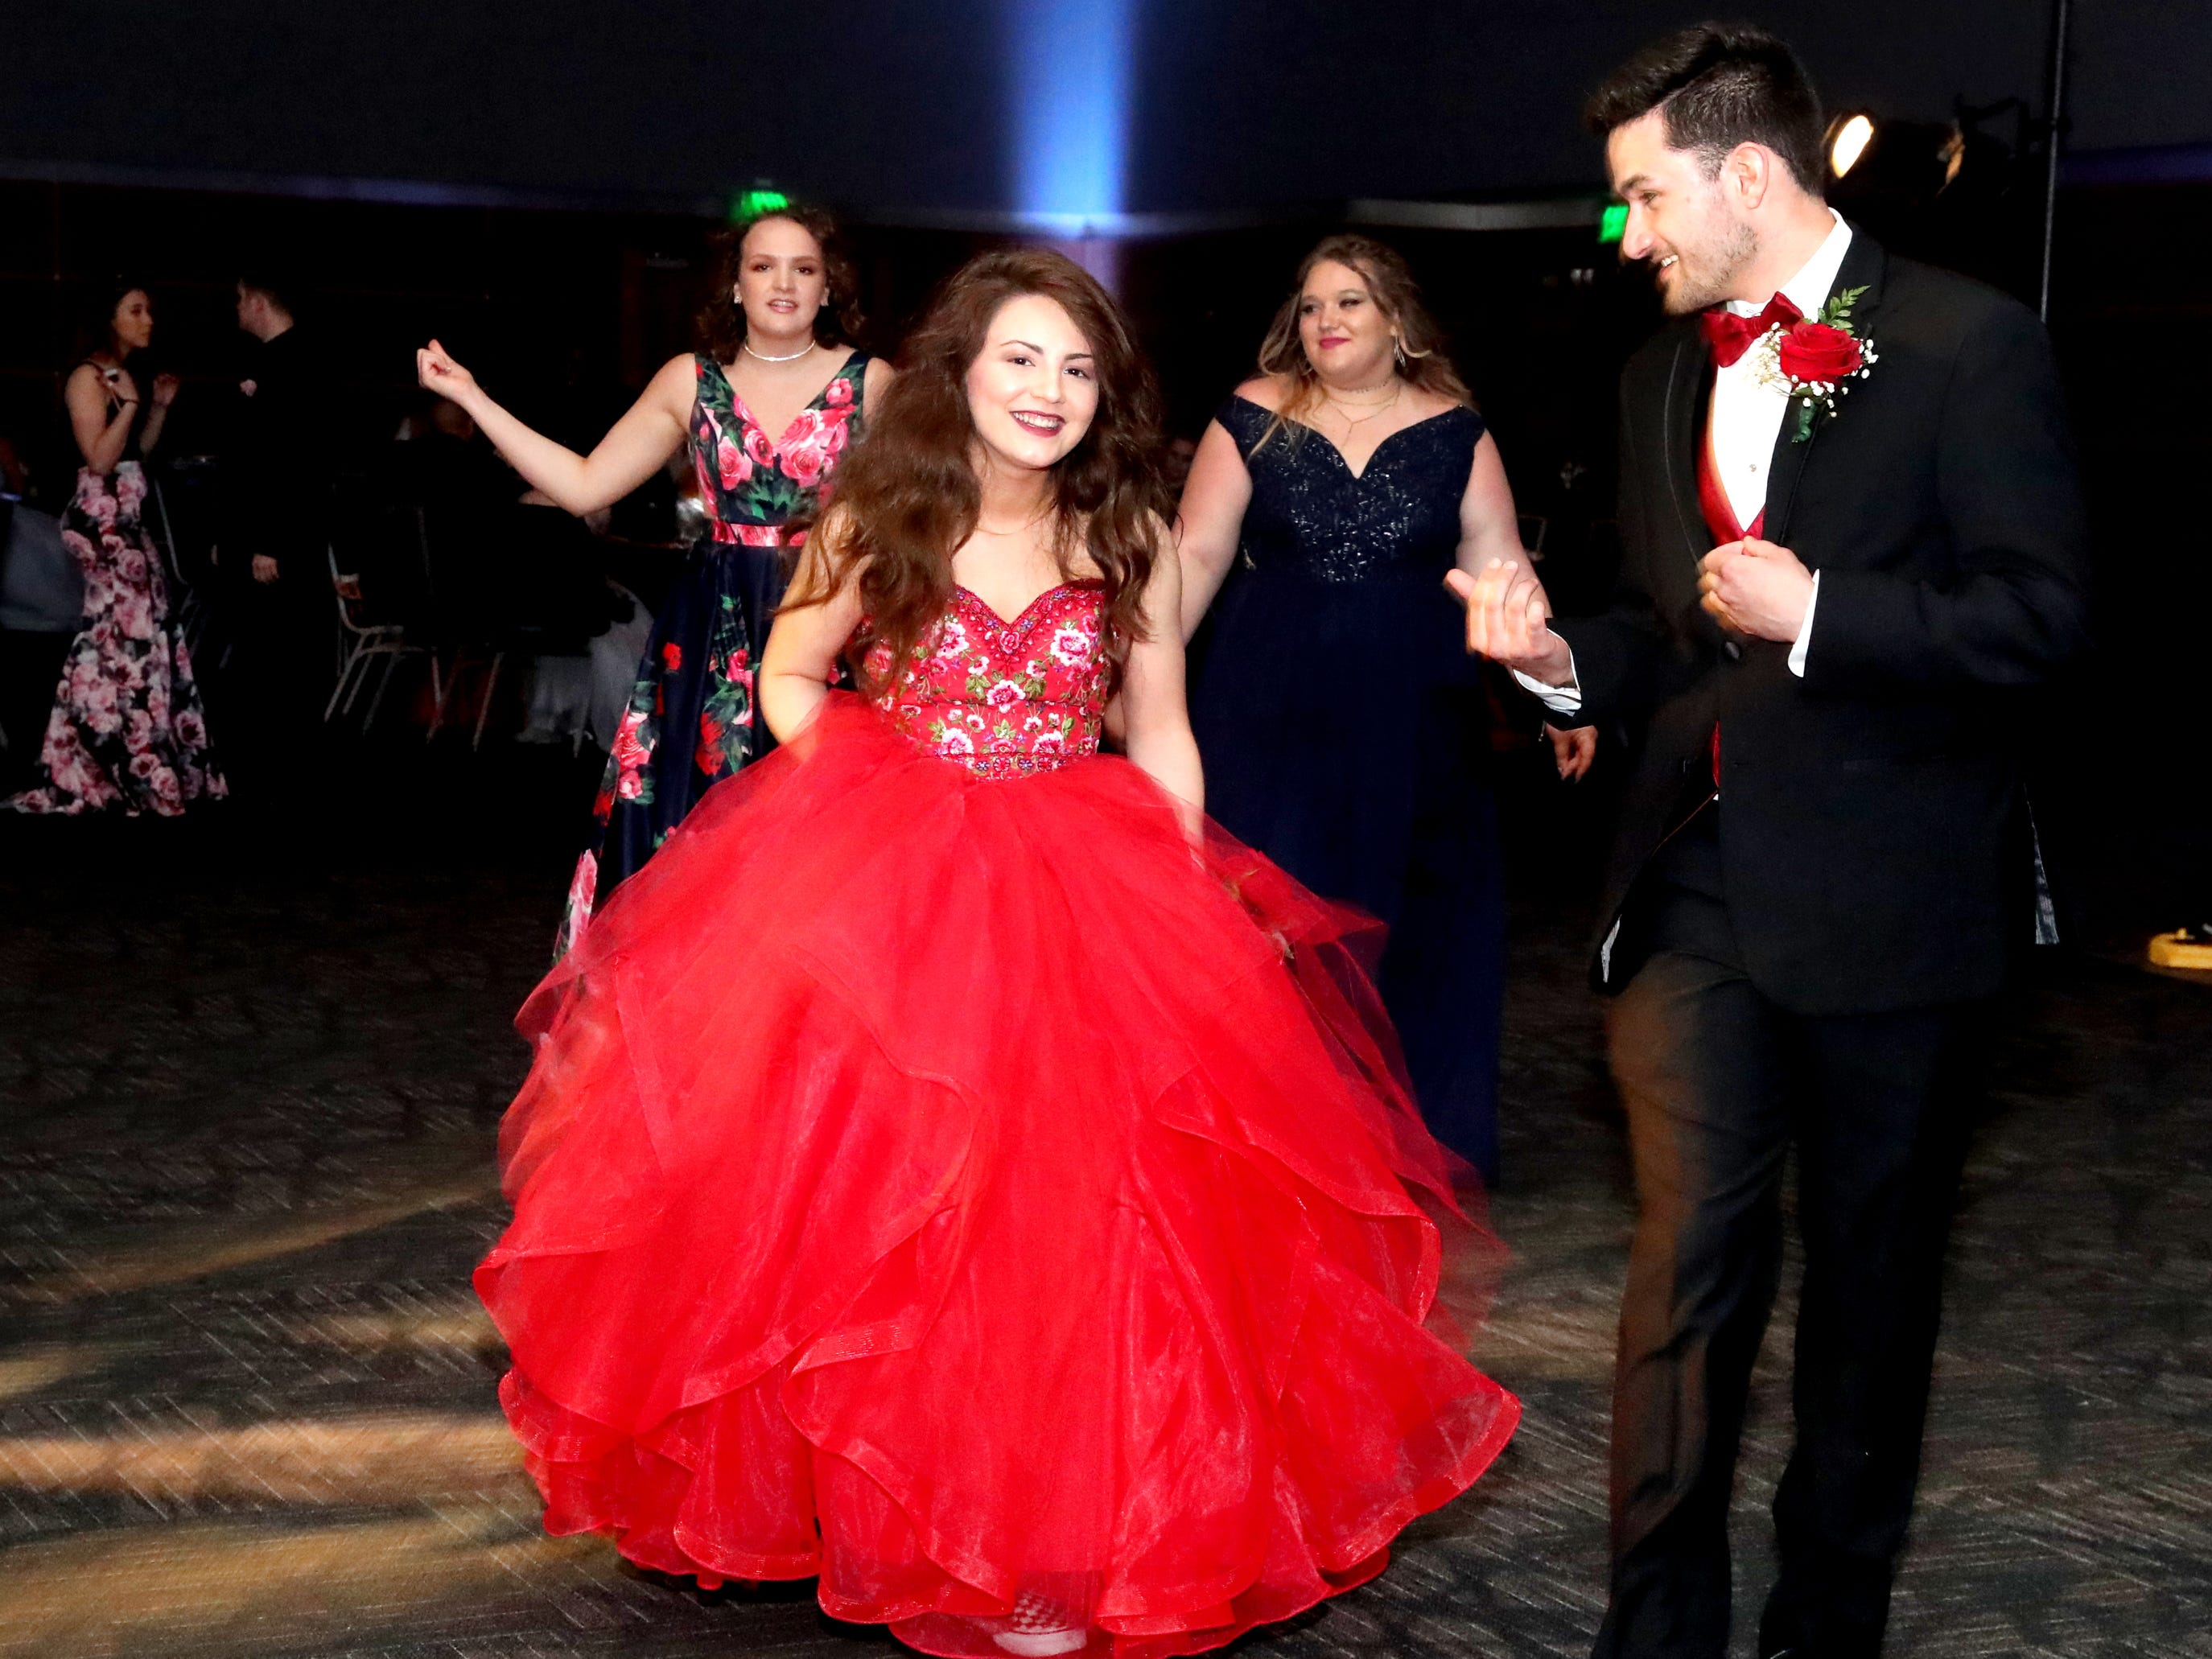 Destiny Smith, left and Alex Ketel, right walk across the dance floor at Blackman's prom held on Friday April 12, 2019, at MTSU.